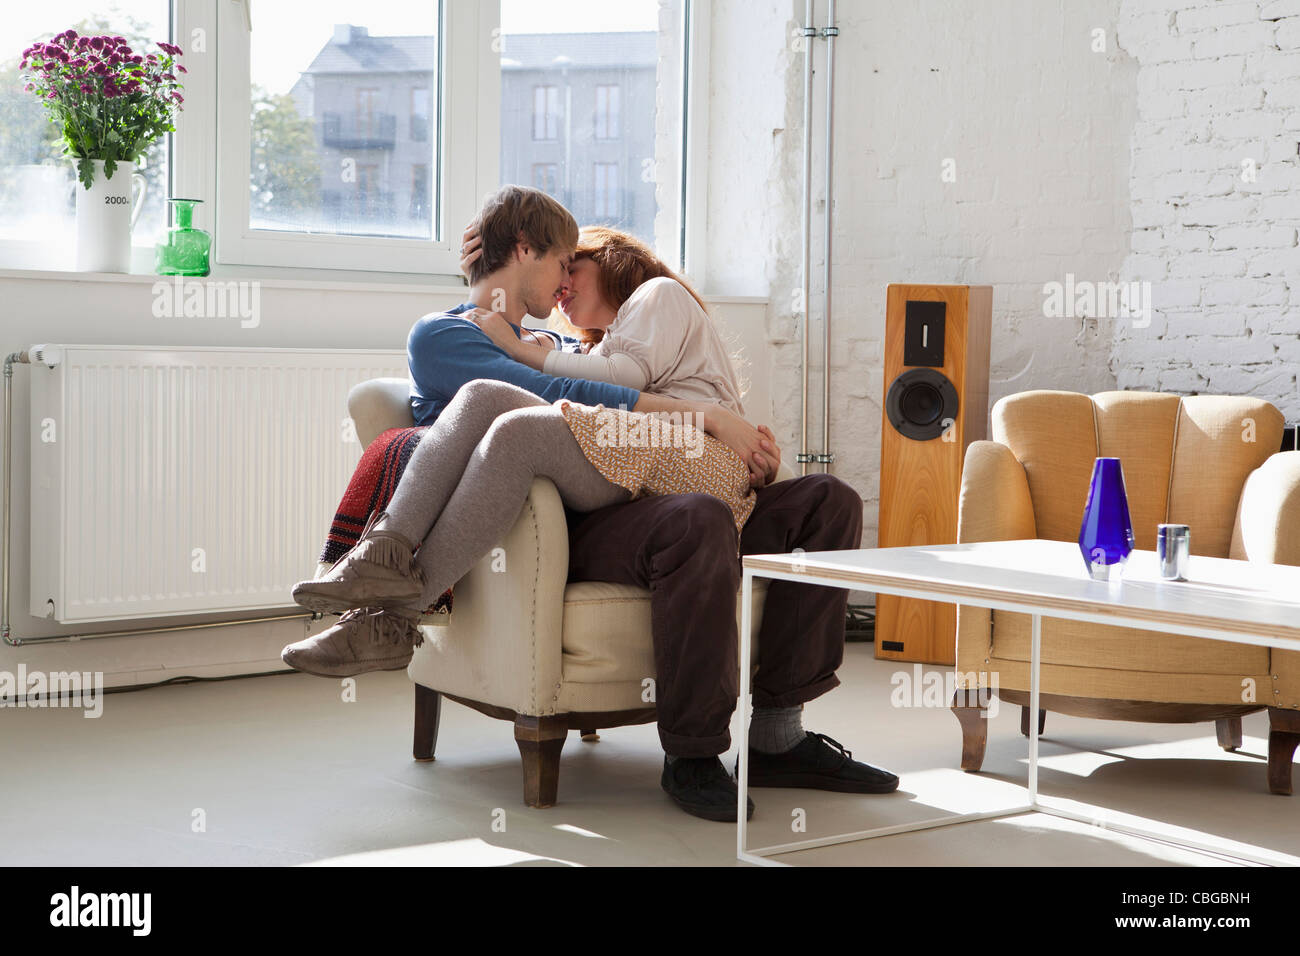 A young woman sitting on her boyfriend's lap, kissing - Stock Image